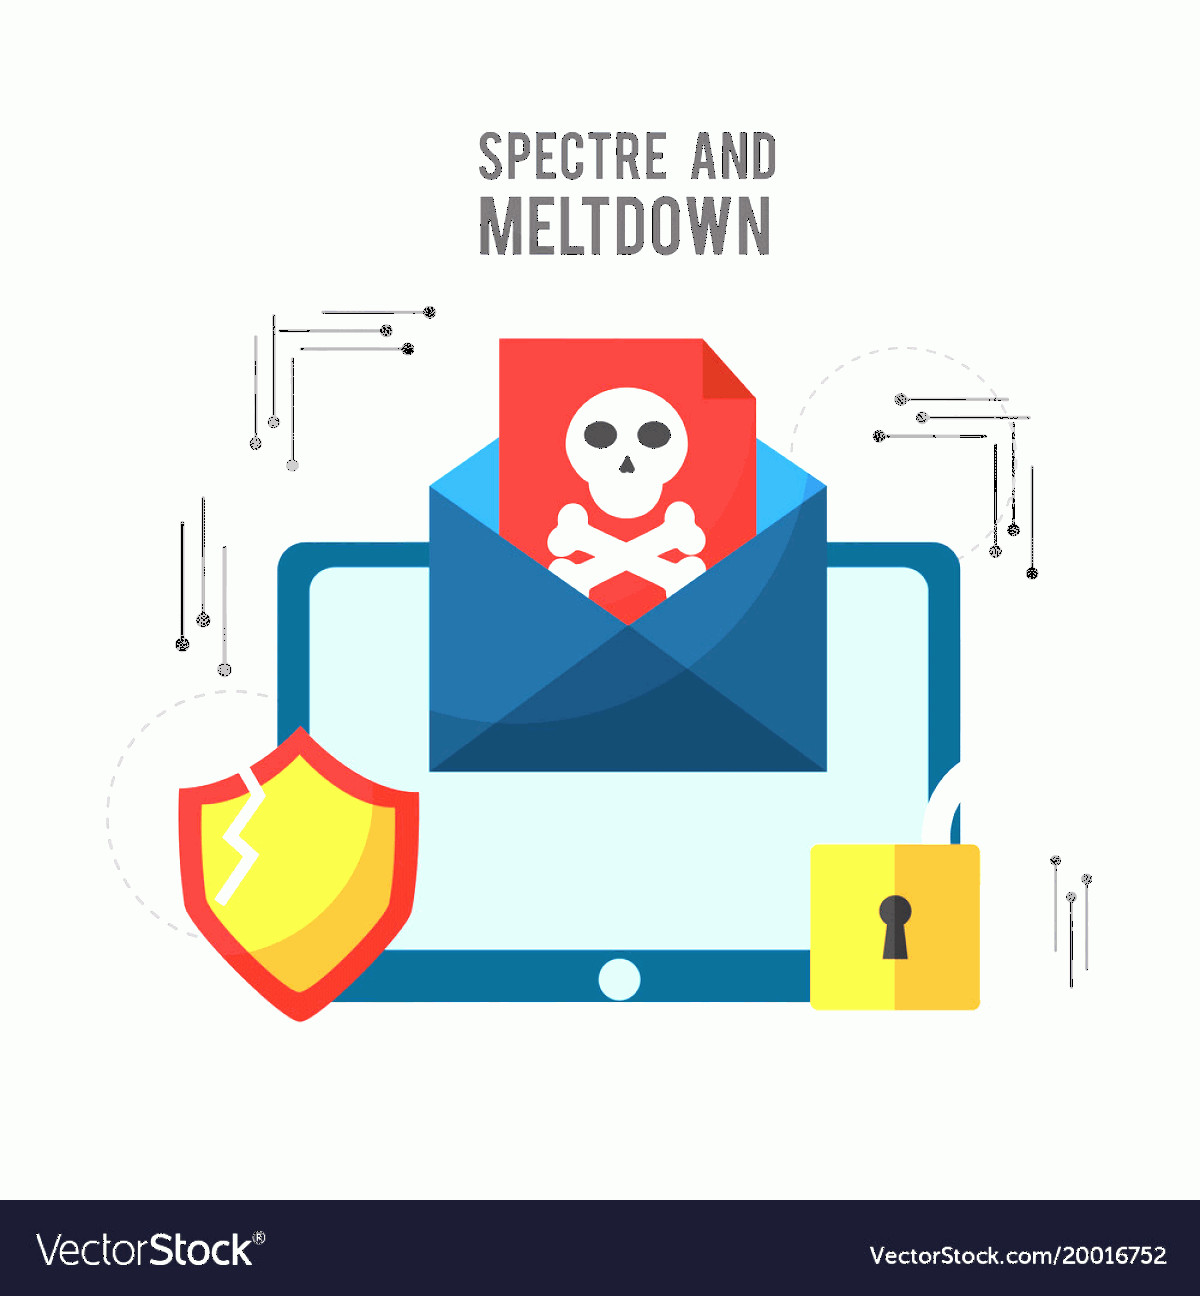 Multi-Vector Attack Plans: Spectre And Meltdown Email Spyware Virus Attack Vector